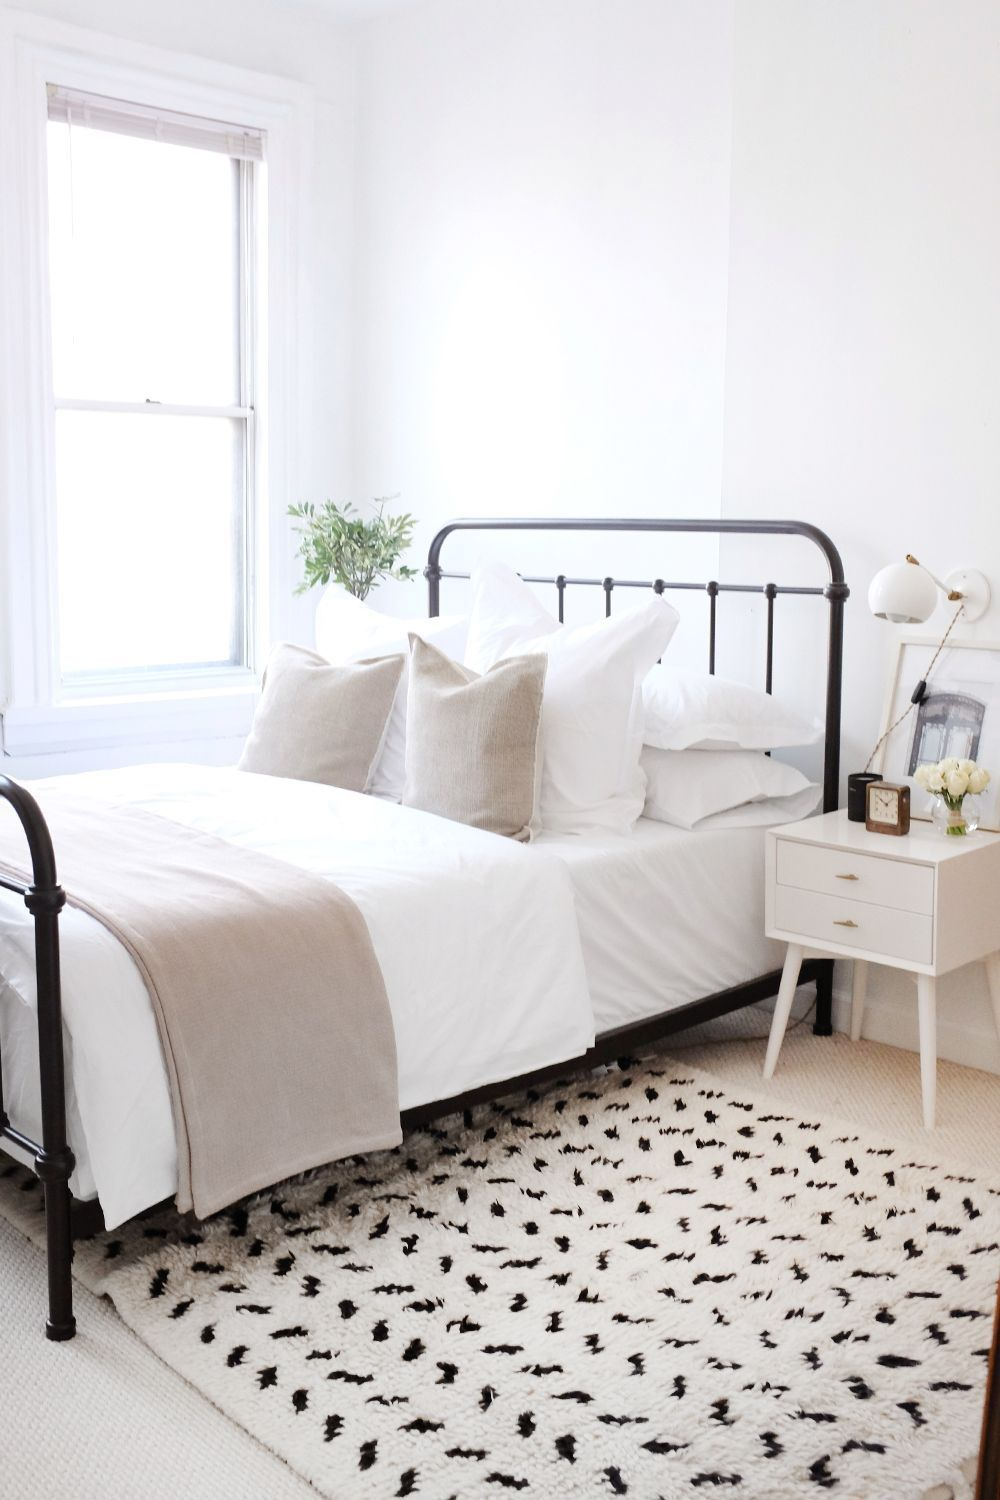 Unique Bedroom Decorating Ideas Extremely Unique Bedroom Design Unique Bedroom Ideas For Small Simple Bedroom Decor Small Guest Bedroom Small Room Bedroom